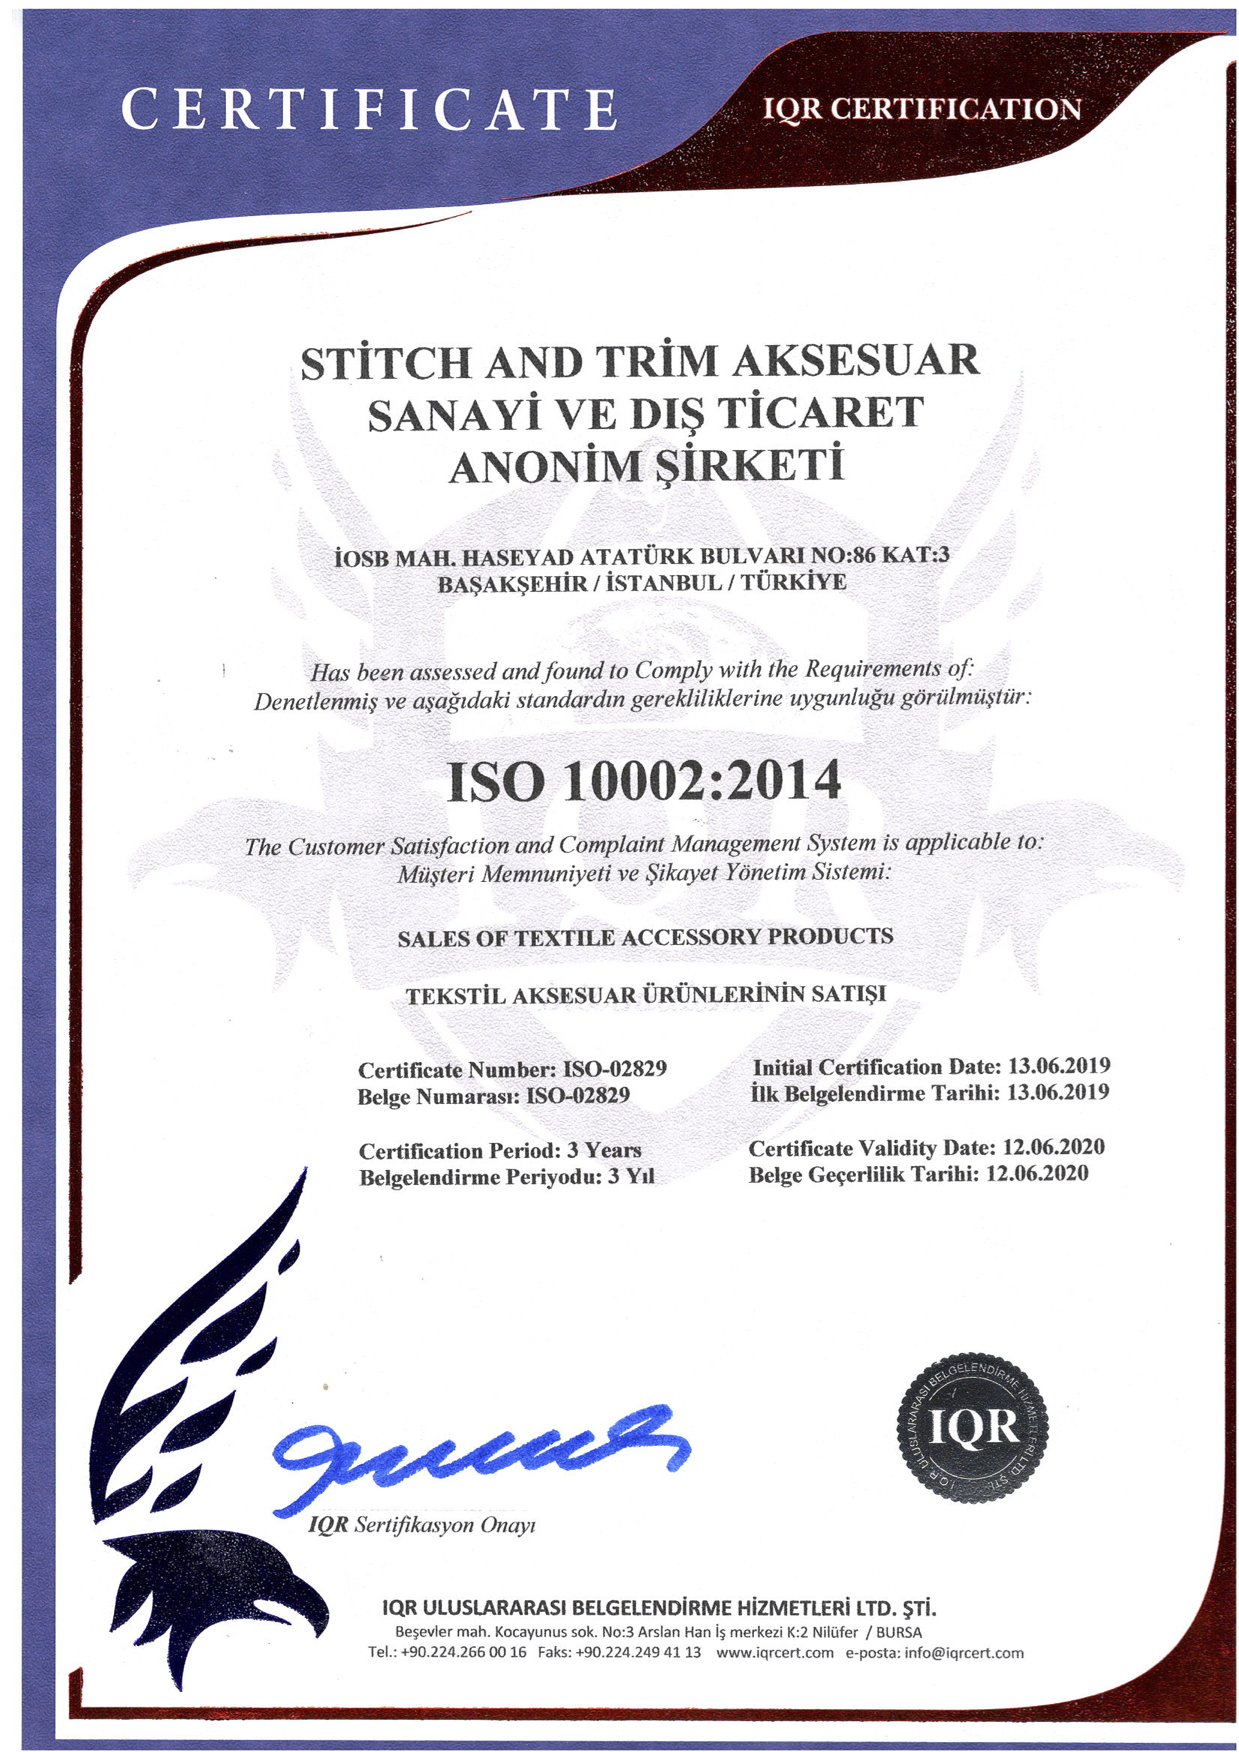 ISO 10002:2014 (THE CUSTOMER SATISFACTION AND COMPLAINT MANAGEMENT SYSTEM)